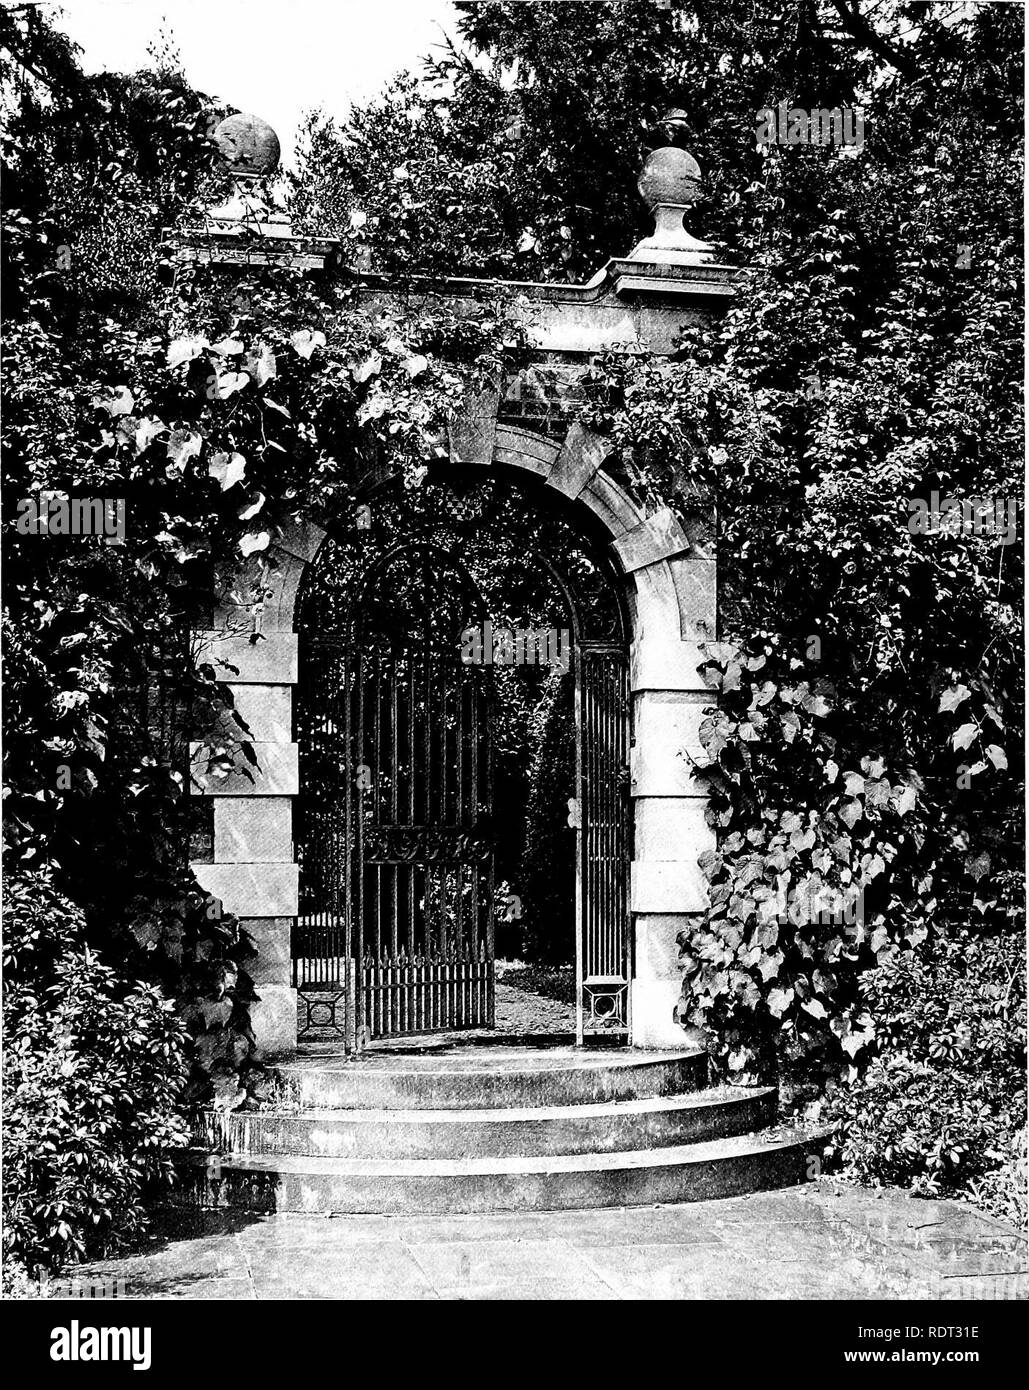 . Gardens for small country houses . Gardens, English. 114 Gardens for Small Country Houses.. FIG. 150.—STONE GATEWAY MODERATELY CLOTHED.. Please note that these images are extracted from scanned page images that may have been digitally enhanced for readability - coloration and appearance of these illustrations may not perfectly resemble the original work.. Jekyll, Gertrude, 1843-1932; Weaver, Lawrence, Sir, 1876-. London : Published at the offices of Country Life . .. and by George Newnes . .. ; New York : Charles Scribner's Sons - Stock Image